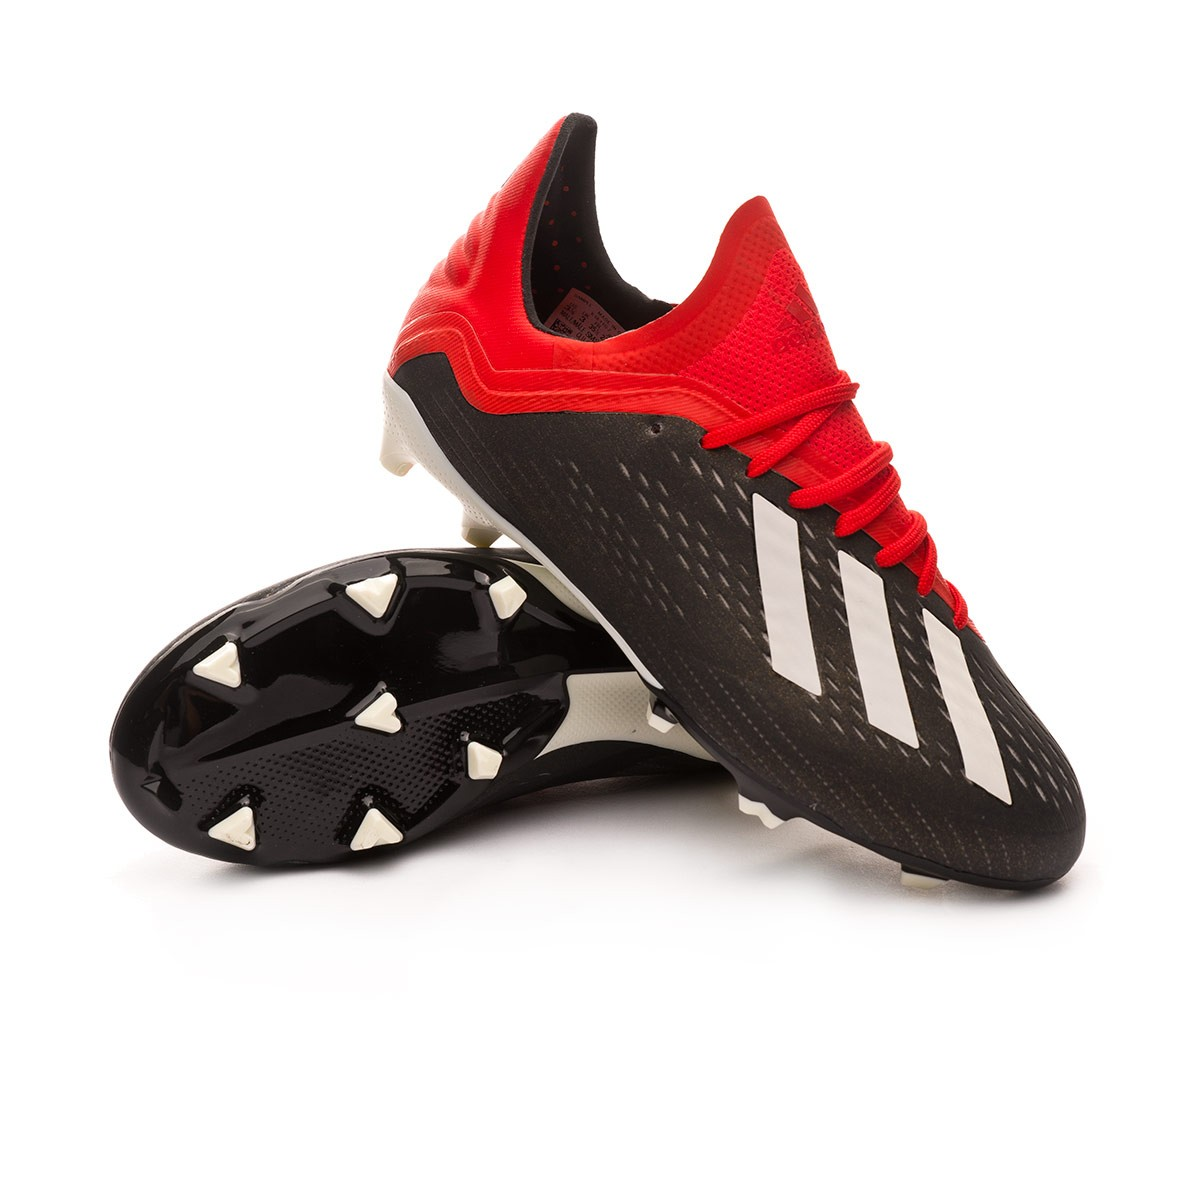 8113ea69adff adidas Kids X 18.1 FG Football Boots. Core black-White-Active red ...